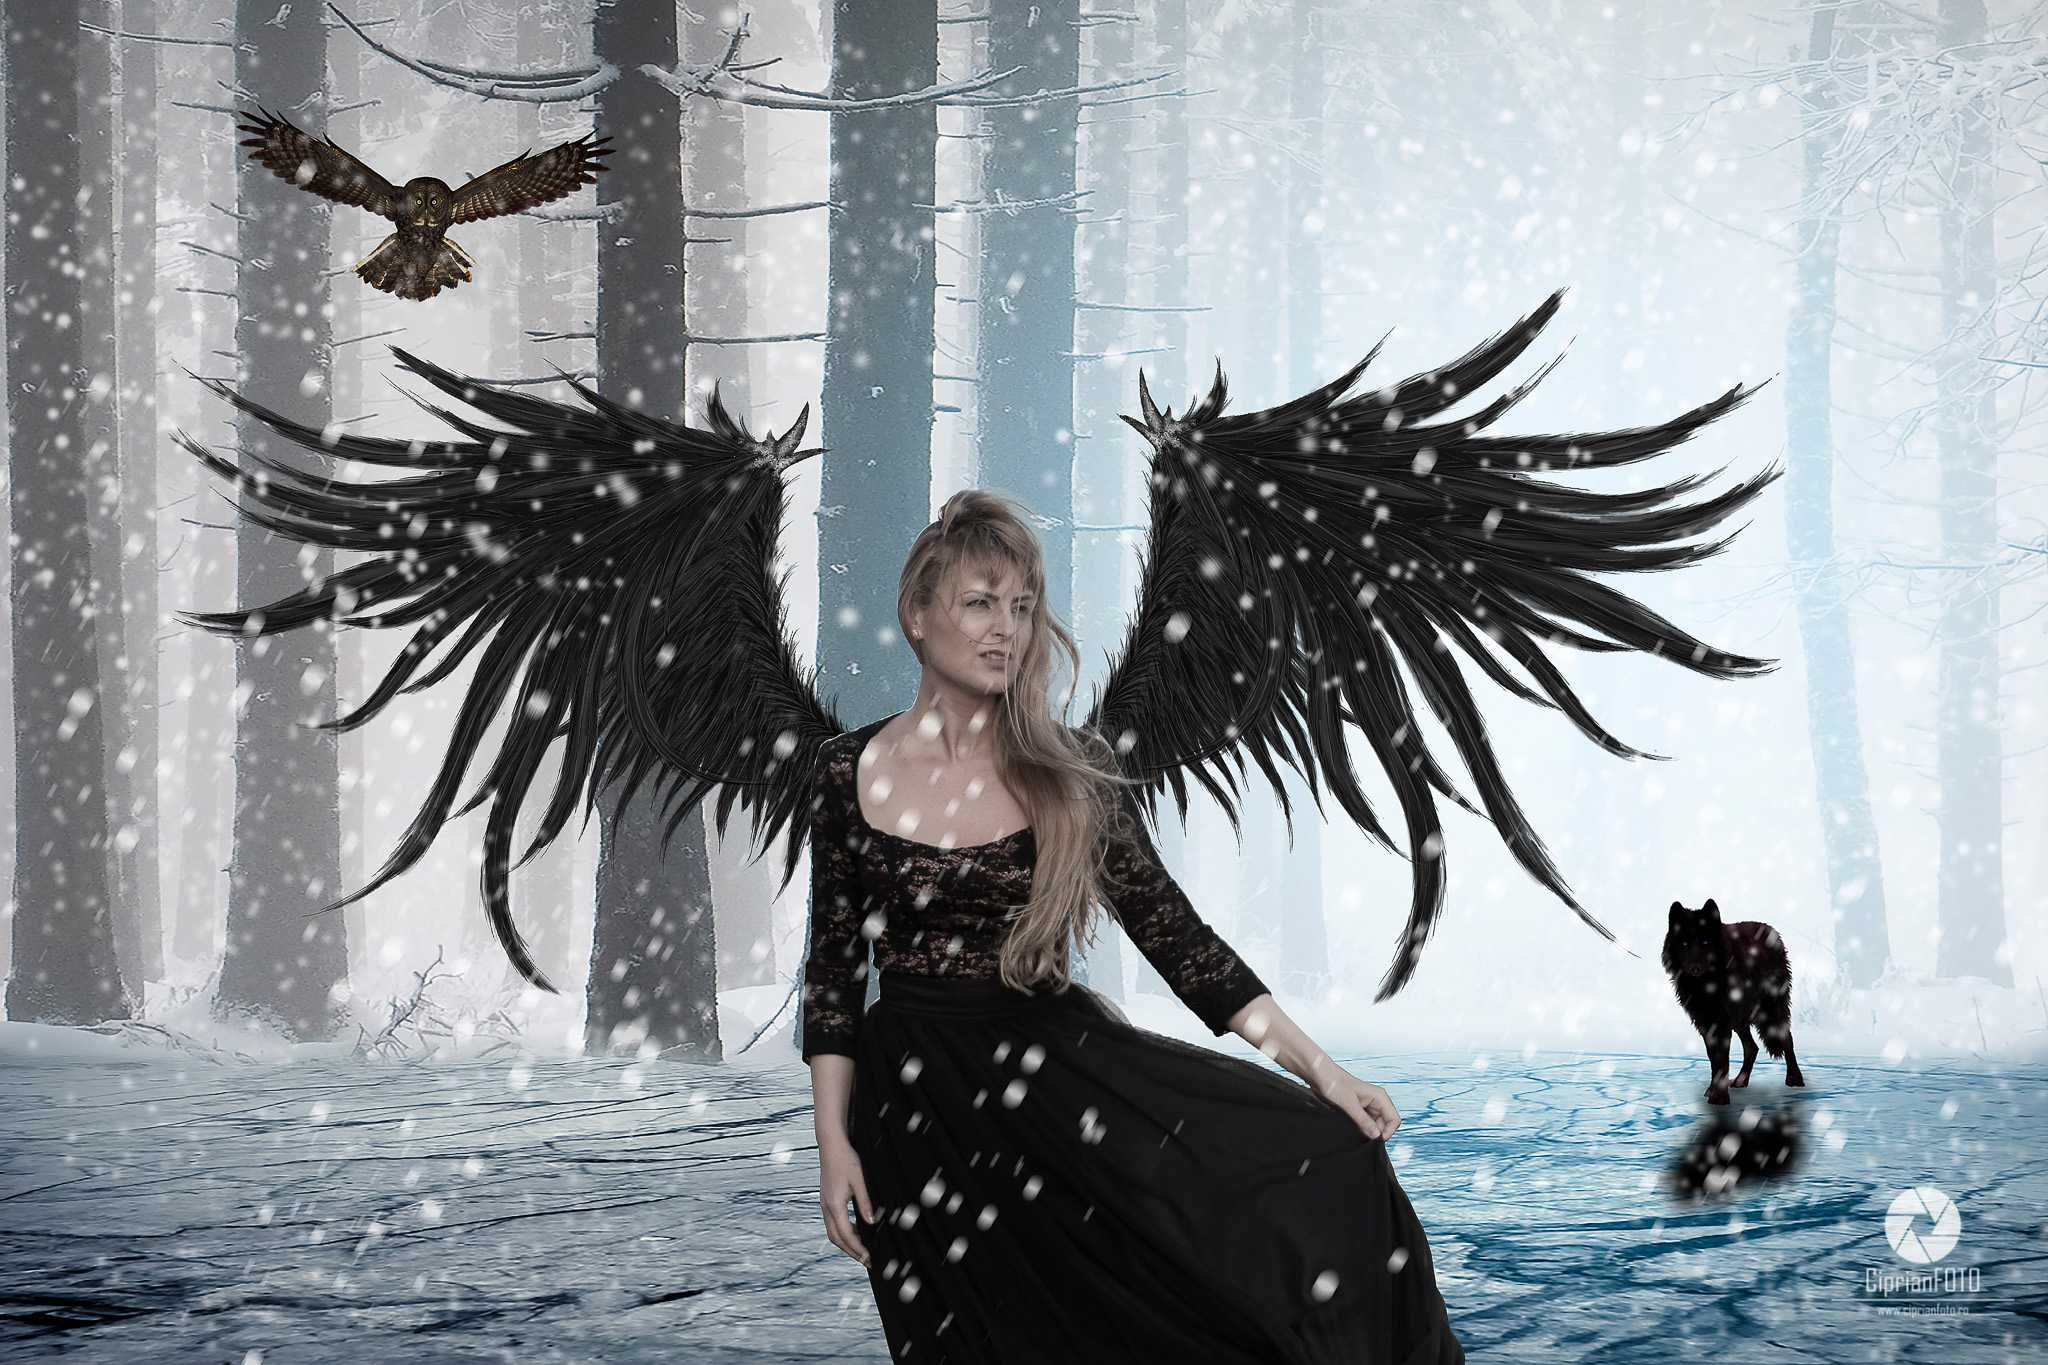 The_Winged_Girl_Photoshop_Manipulation_Tutorial_CiprianFOTO